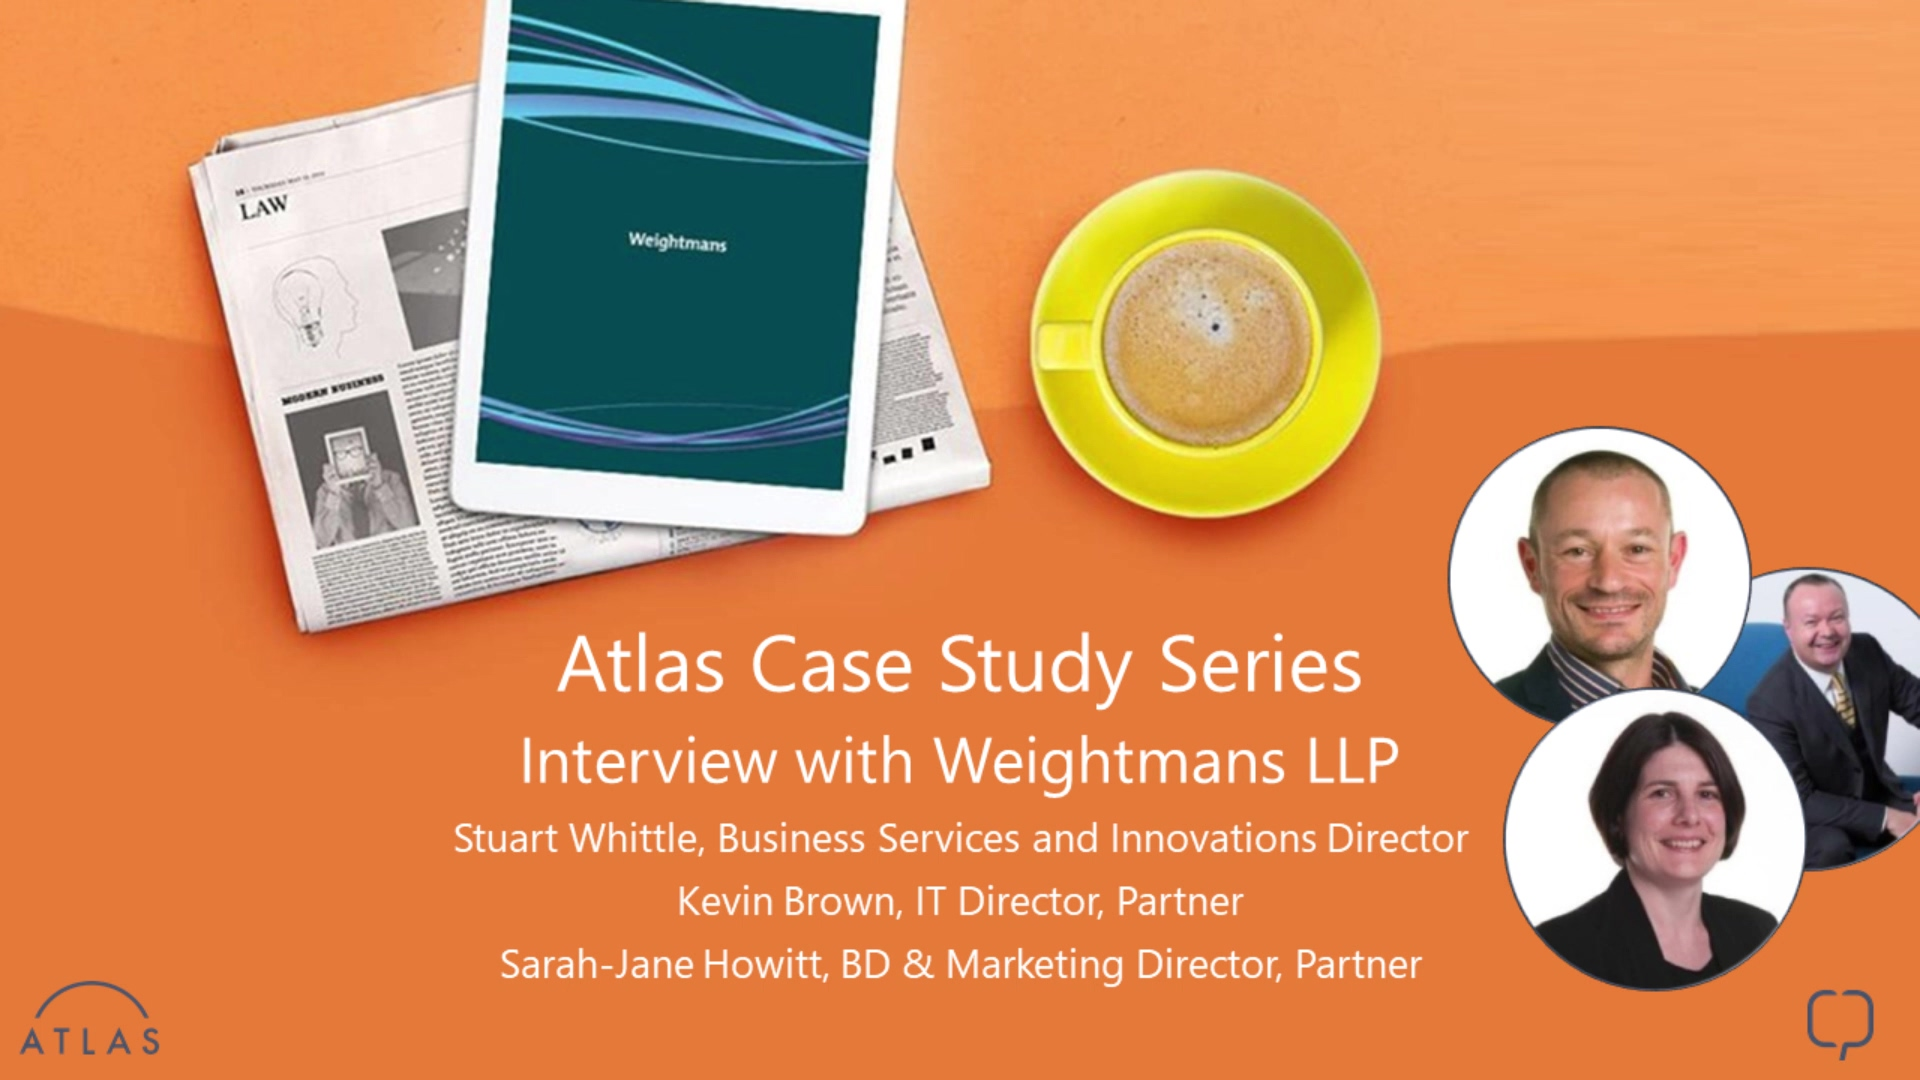 Atlas case study series interview with Weightmans LLP